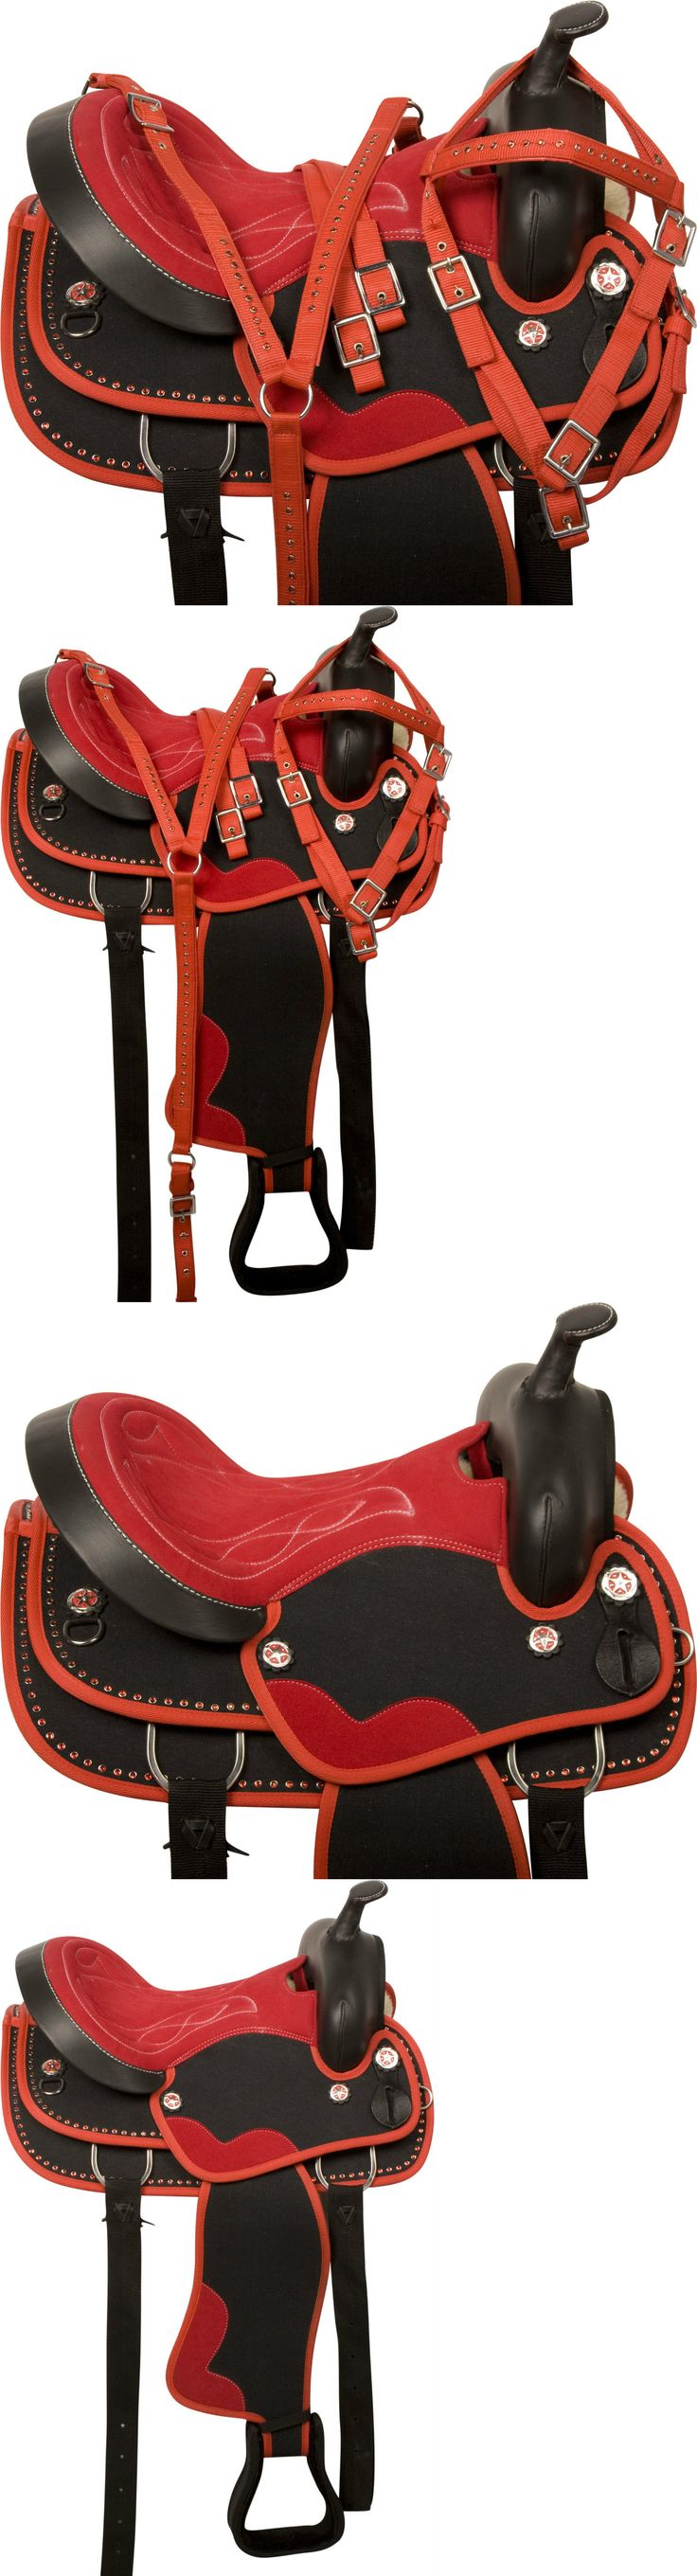 Saddles 47291: Gaited Western Pleasure Trail Light Weight Synthetic Saddle Tack 14 15 16 17 -> BUY IT NOW ONLY: $151.99 on eBay!